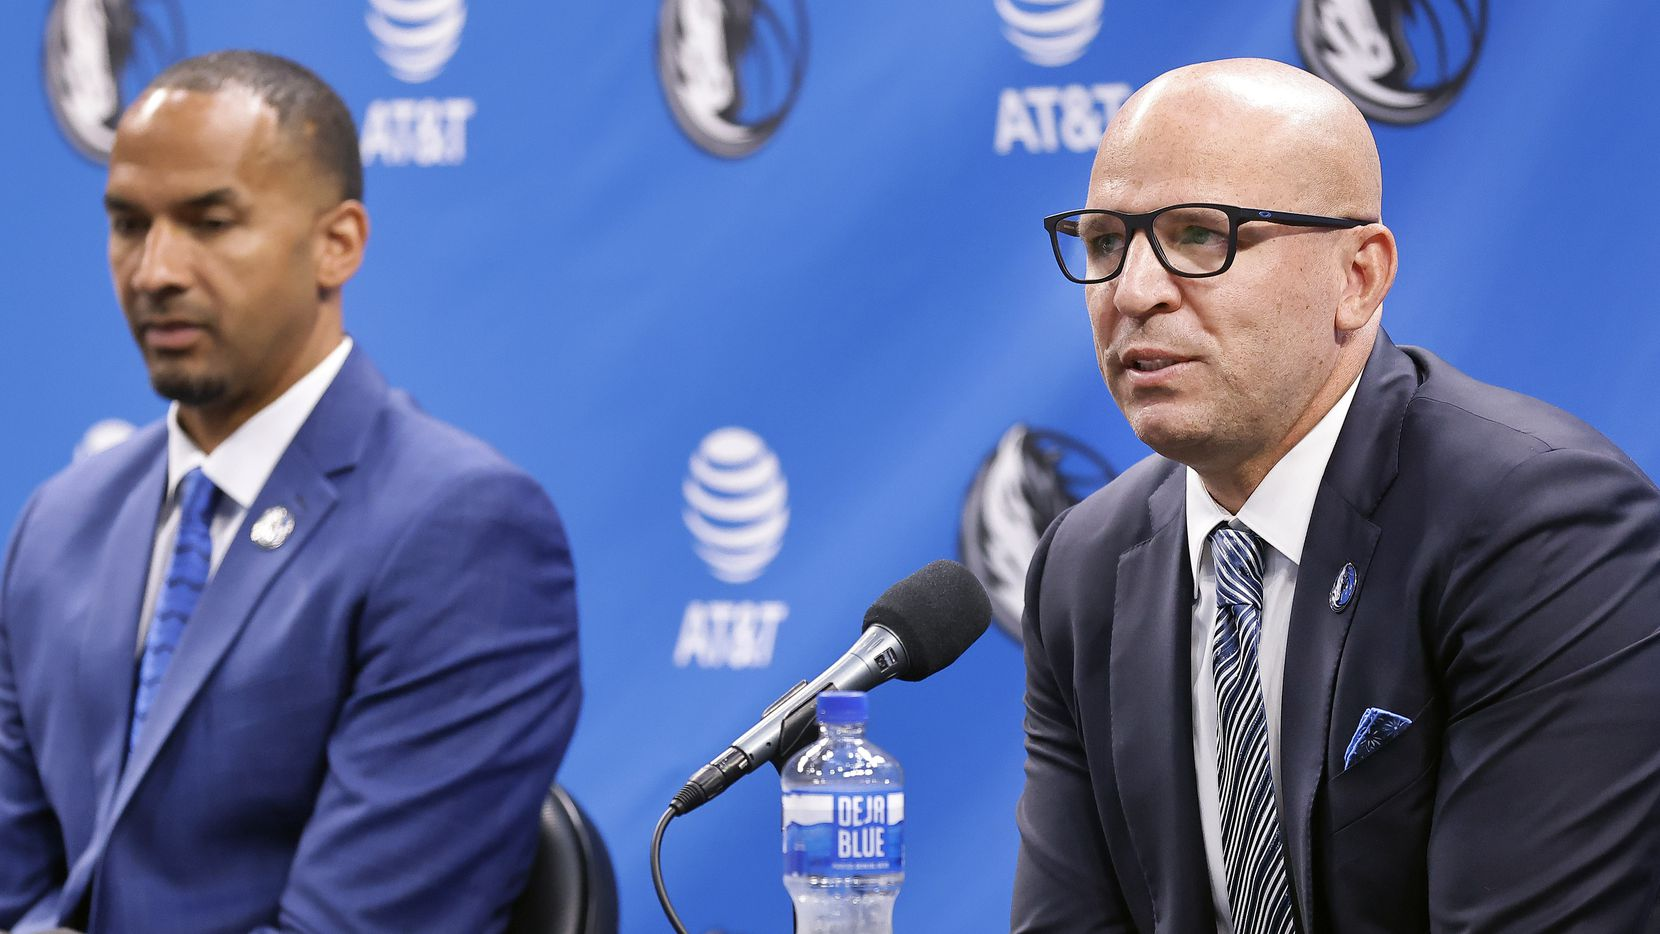 Dallas Mavericks new head coach Jason Kidd (right) and new general manager Nico Harrison respond to questions during a press conference to formally introduce them at the American Airlines Center, Thursday, July 15, 2021.